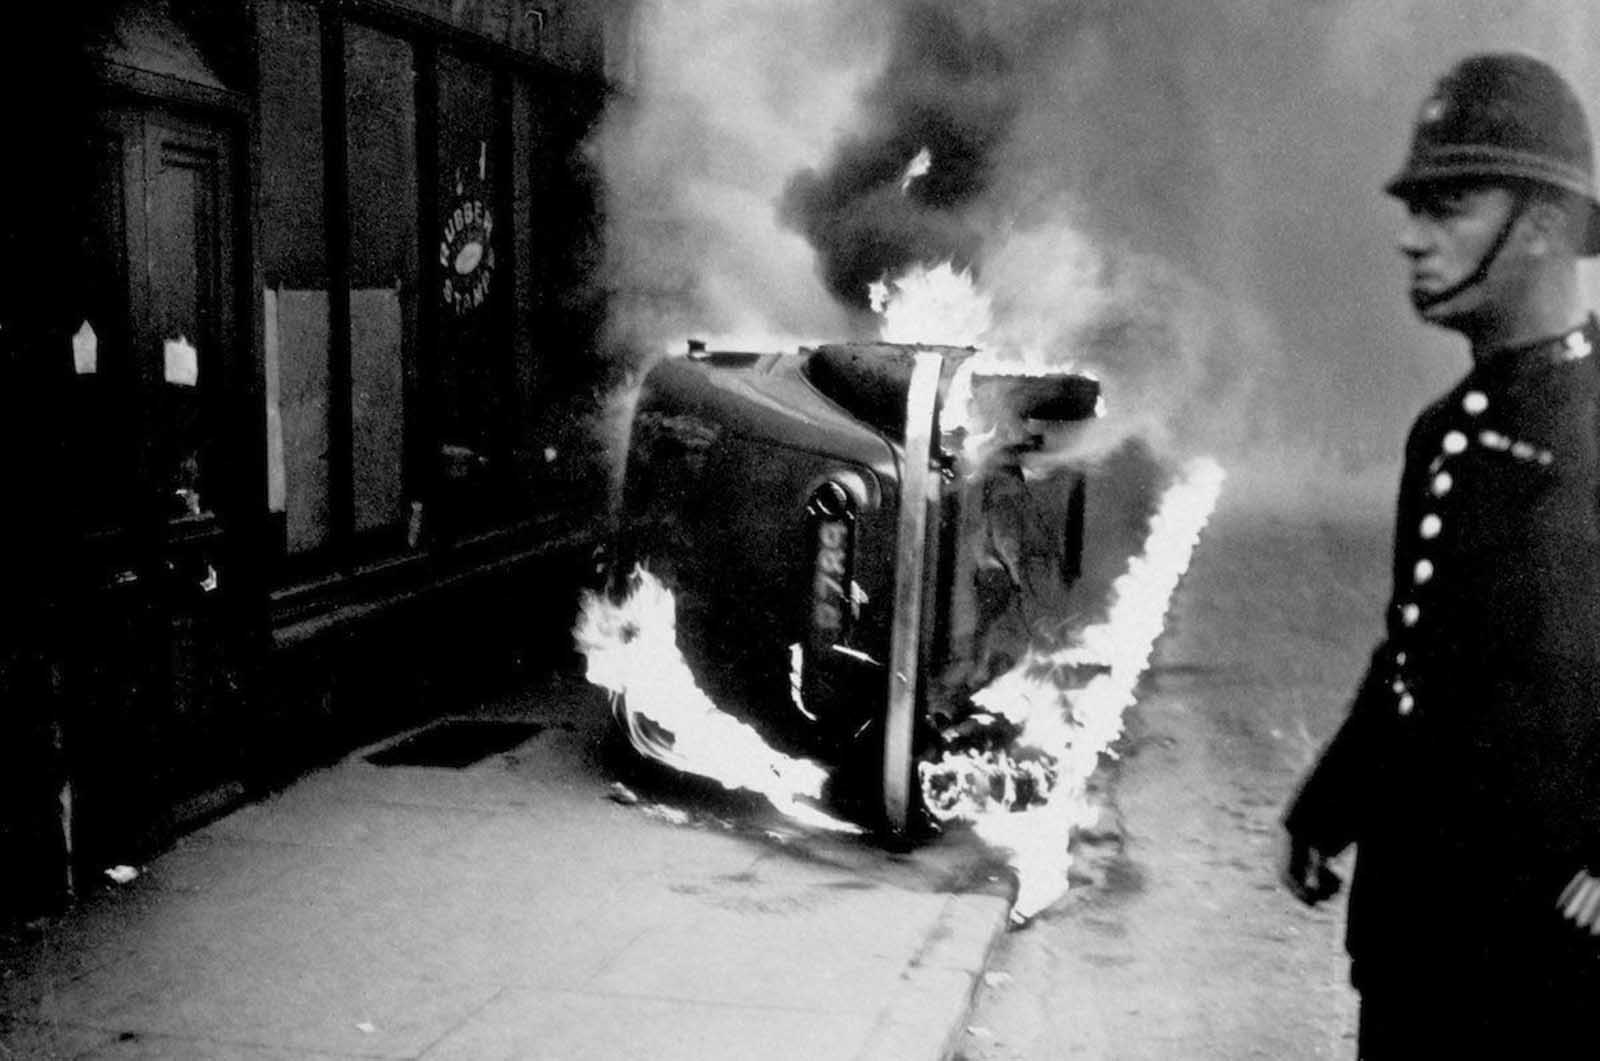 A policeman stands by a burning car, set alight during a communist march in the East End of London. 1936.